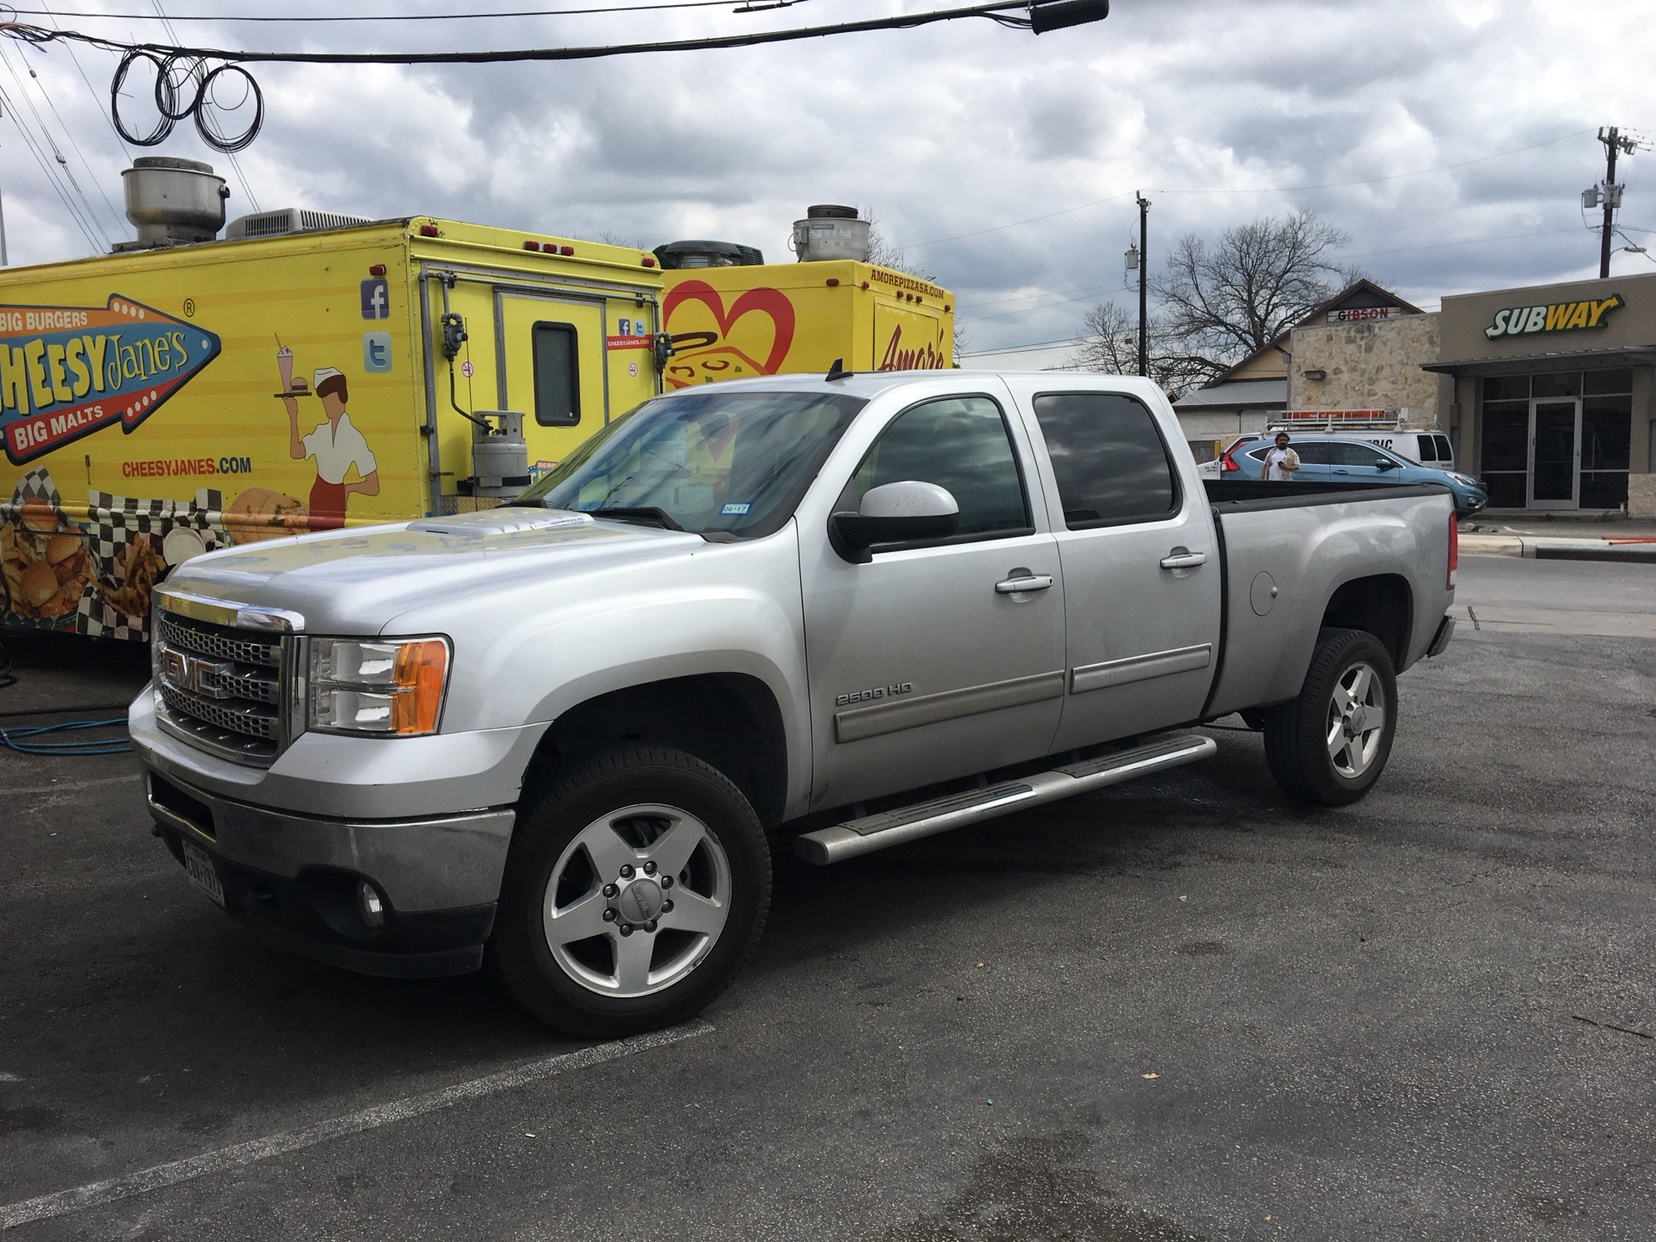 Slow rebuildbuild of my 2013 gmc sierra 2500 chevy truckcar there was also some hail damage on the bed too it was a fully optioned slt with 86k miles the dude cut me a really good deal on the truck publicscrutiny Choice Image